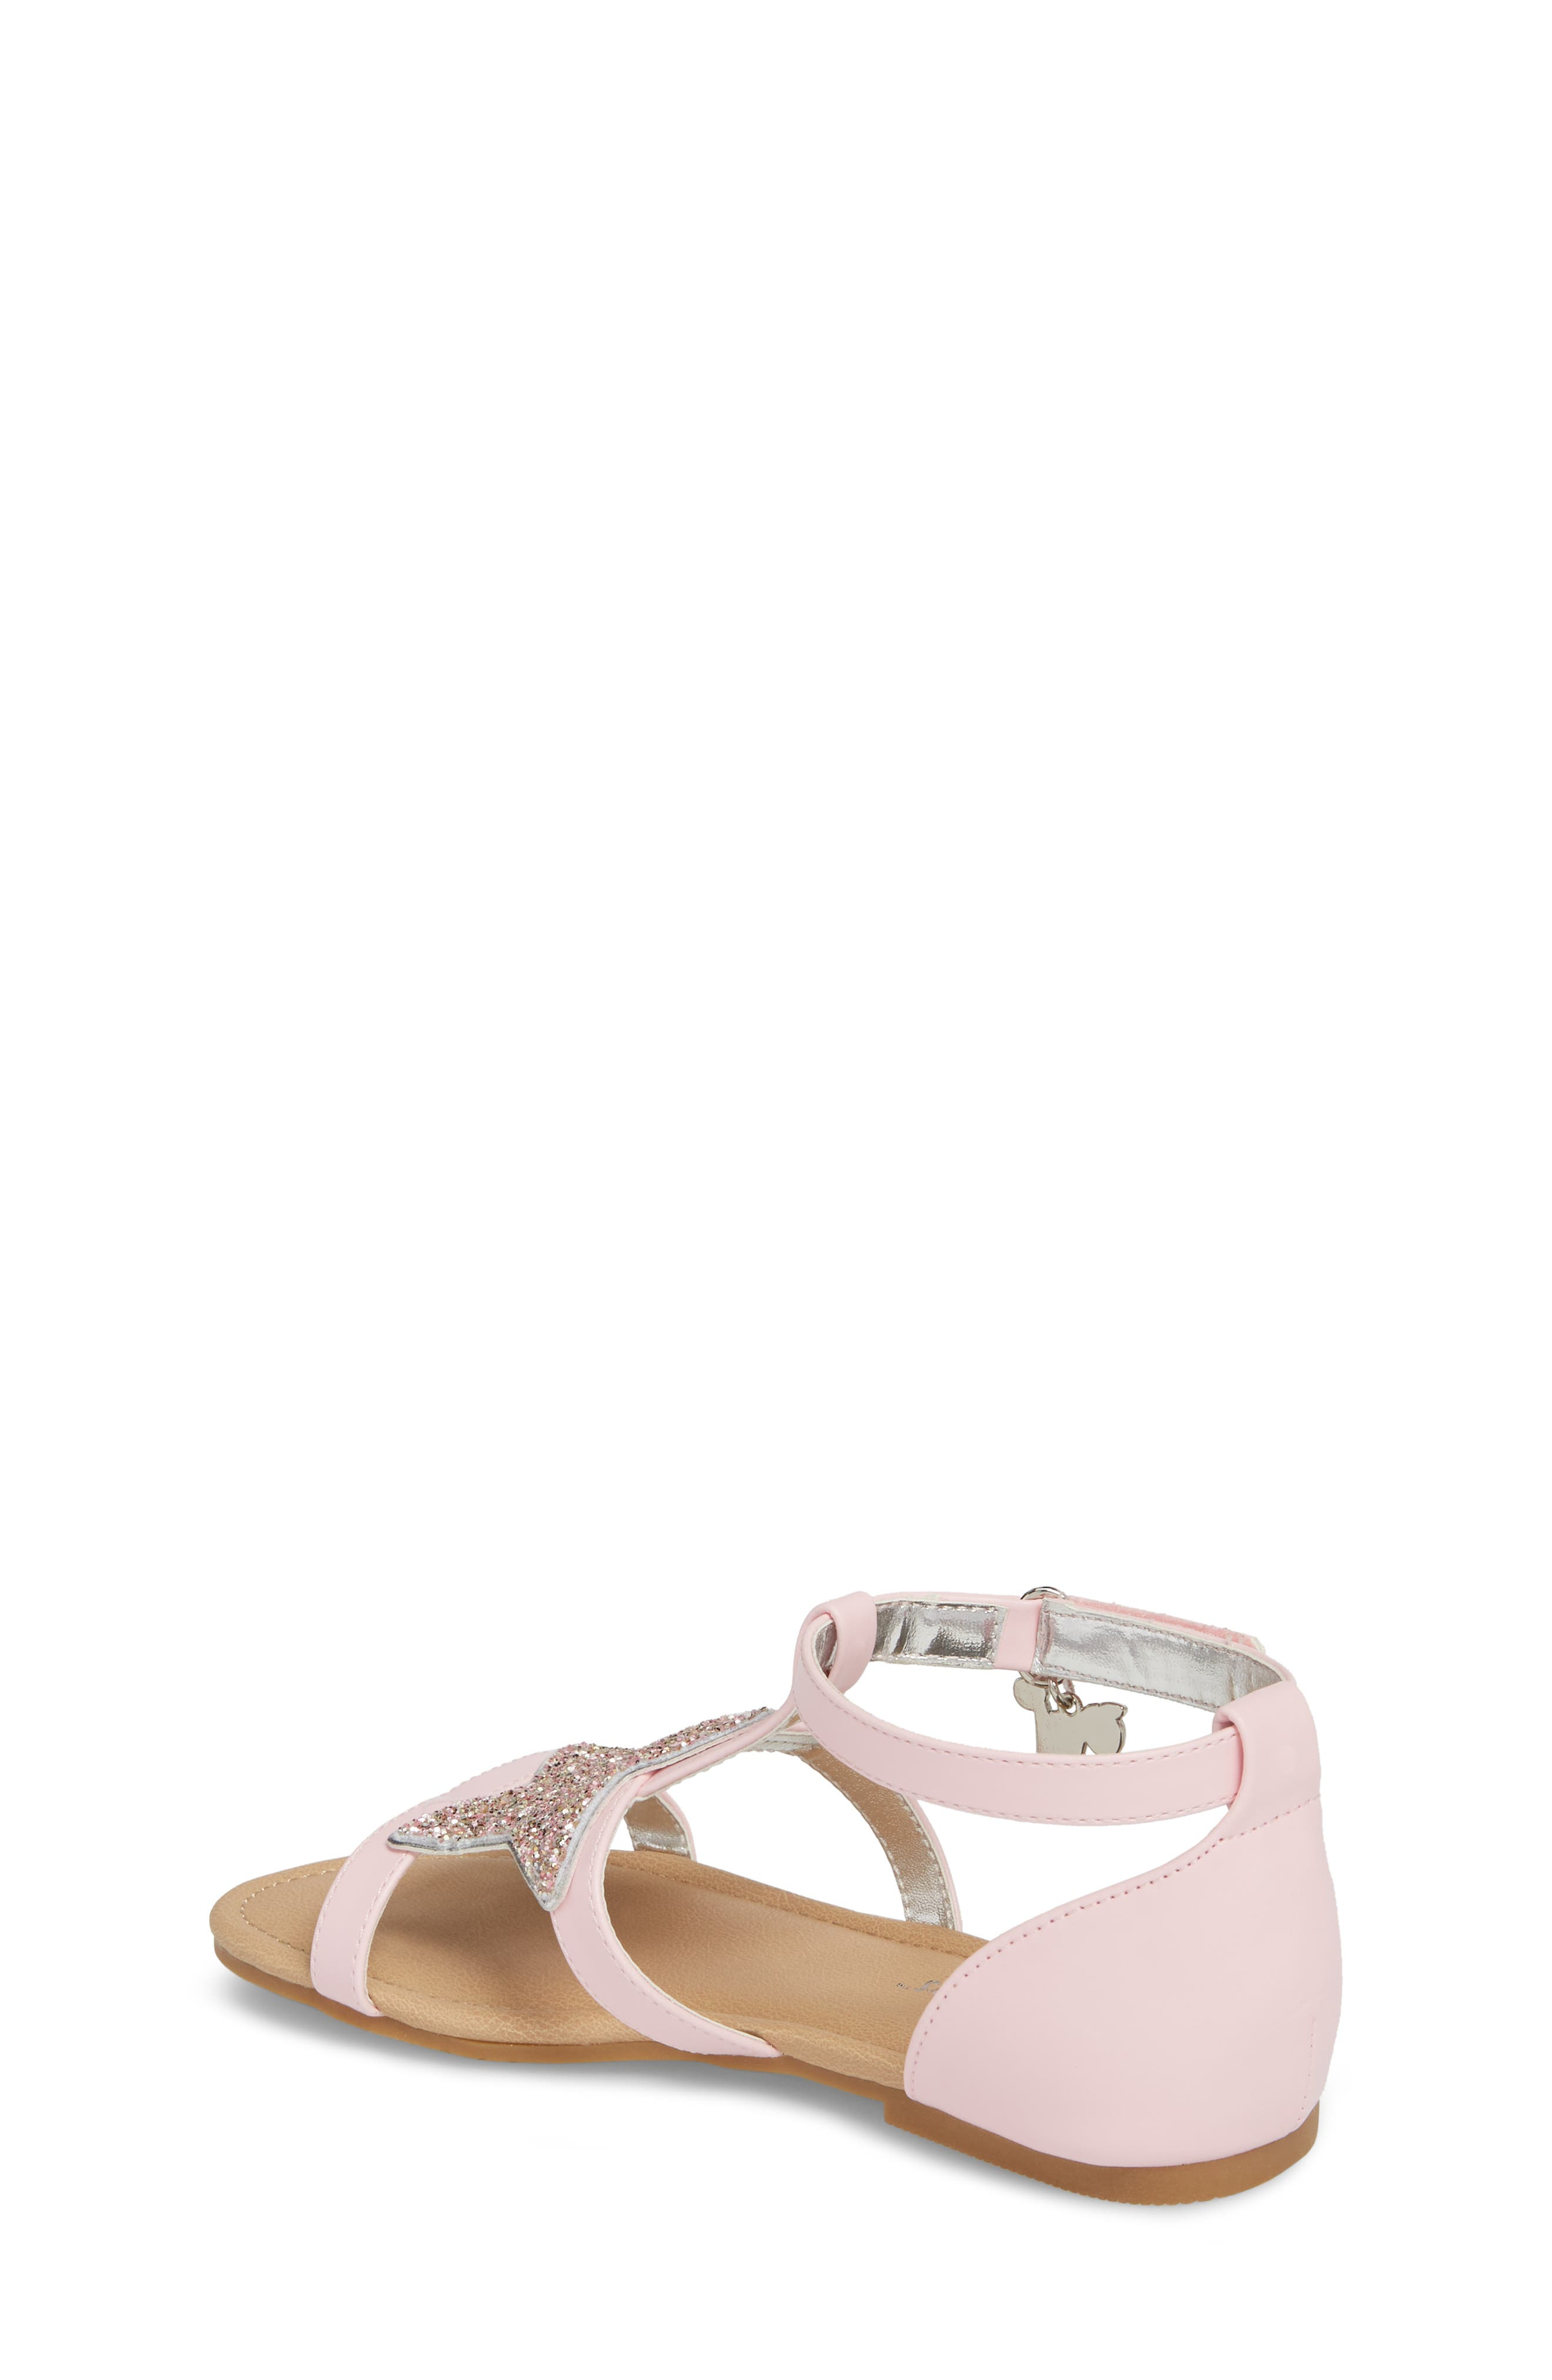 Emerson Glitter Star Sandal,                             Alternate thumbnail 2, color,                             Orchid Pink